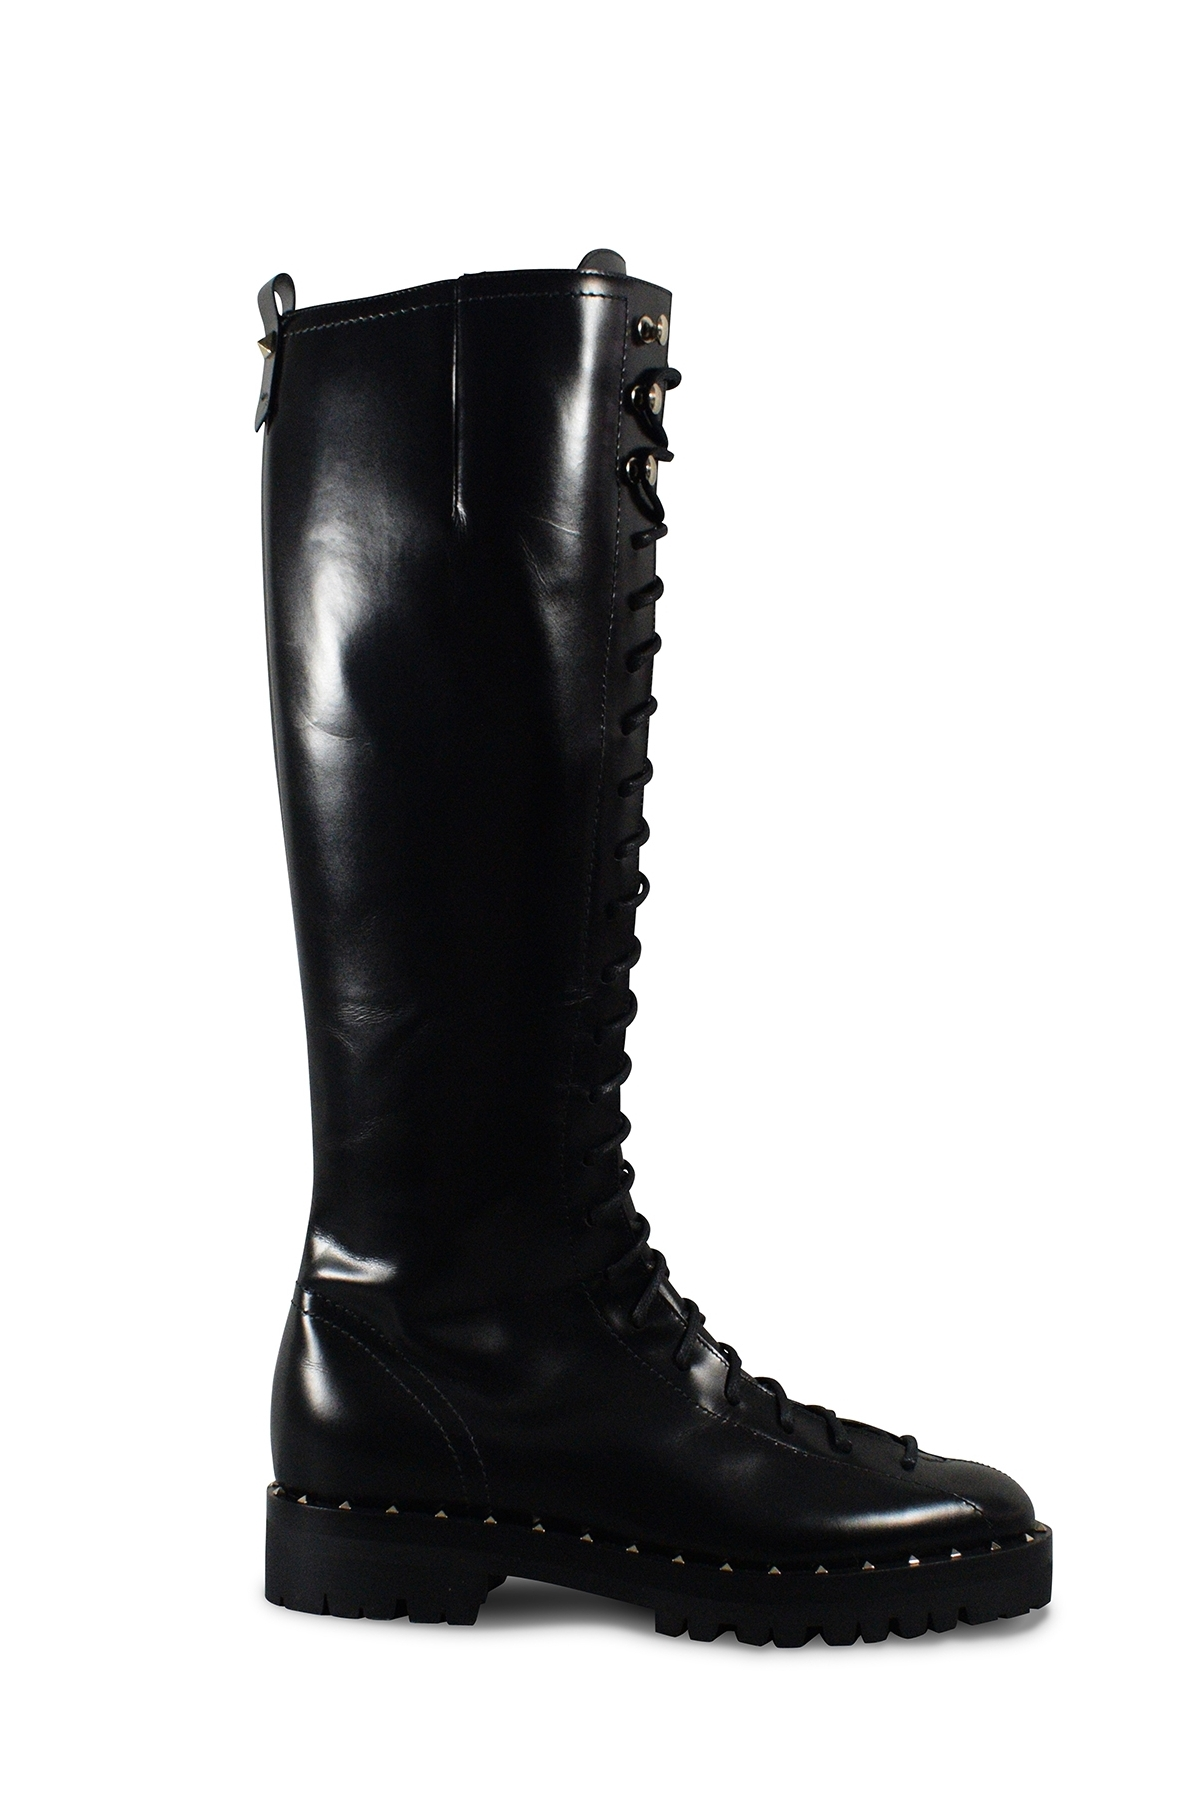 Valentino Soul Rockstud lace-up boots in black shiny leather with platinium finish studs on the notched rubber sole